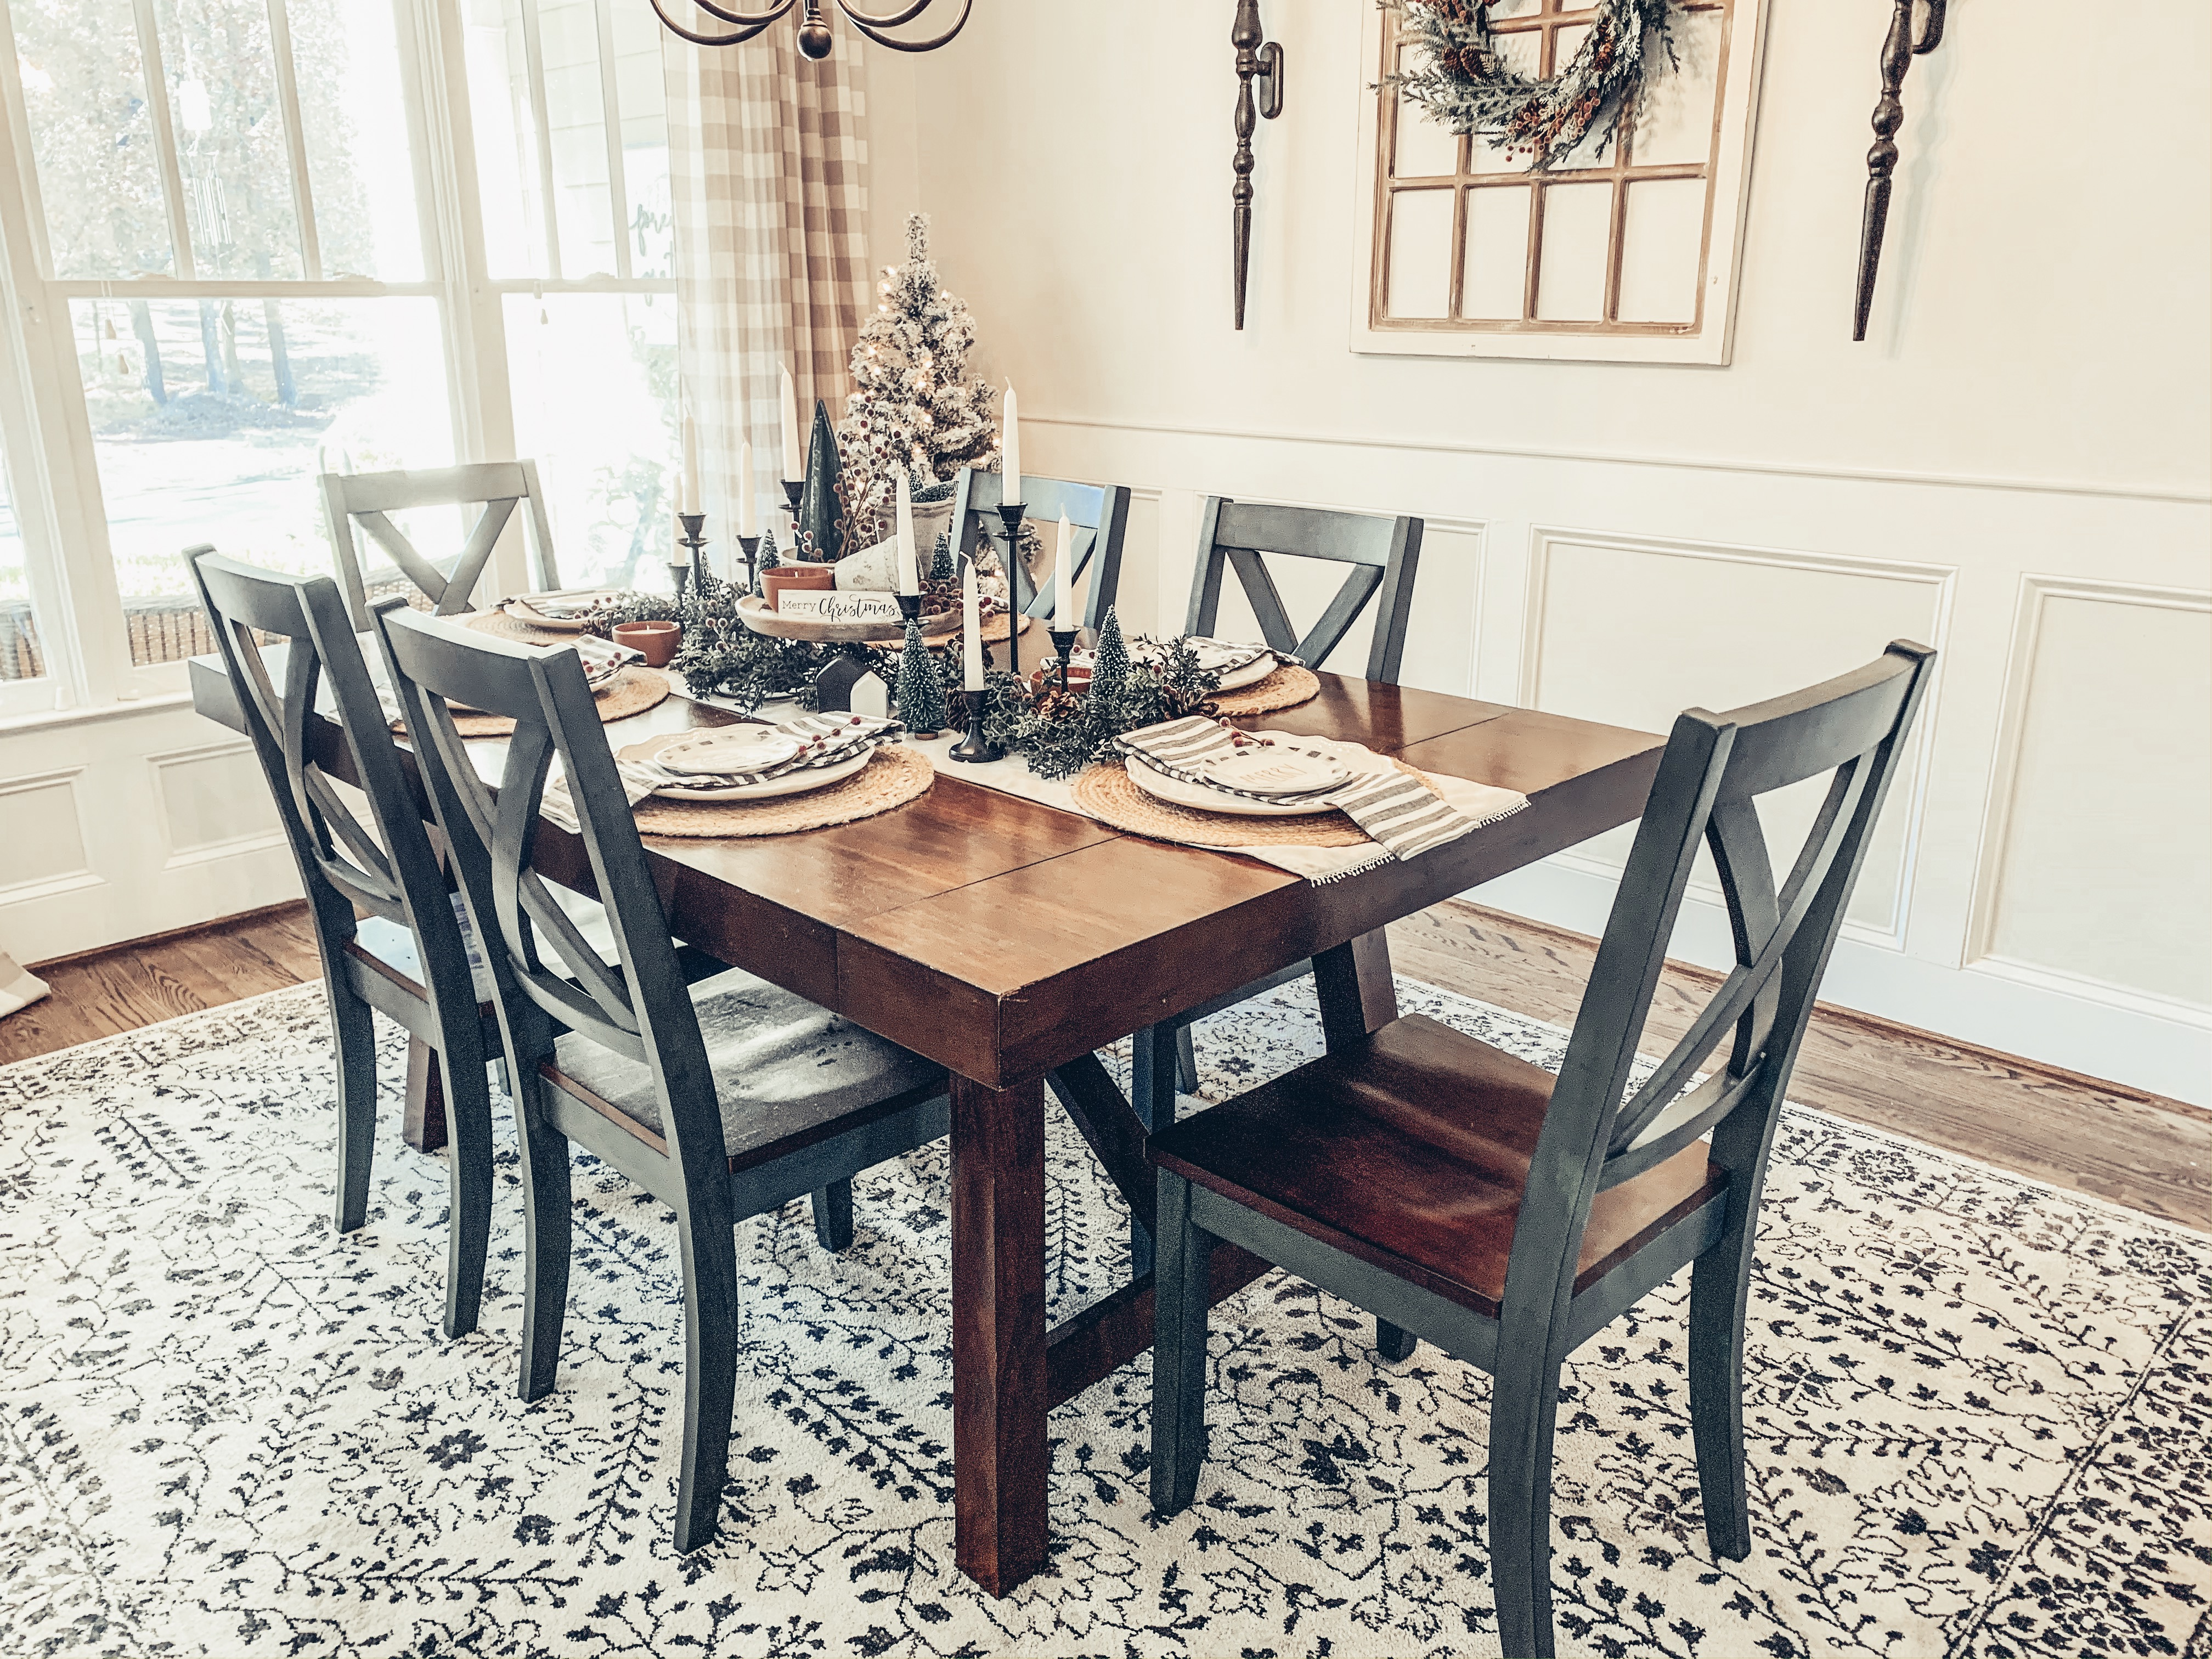 Creating A Festive Holiday Tablescape